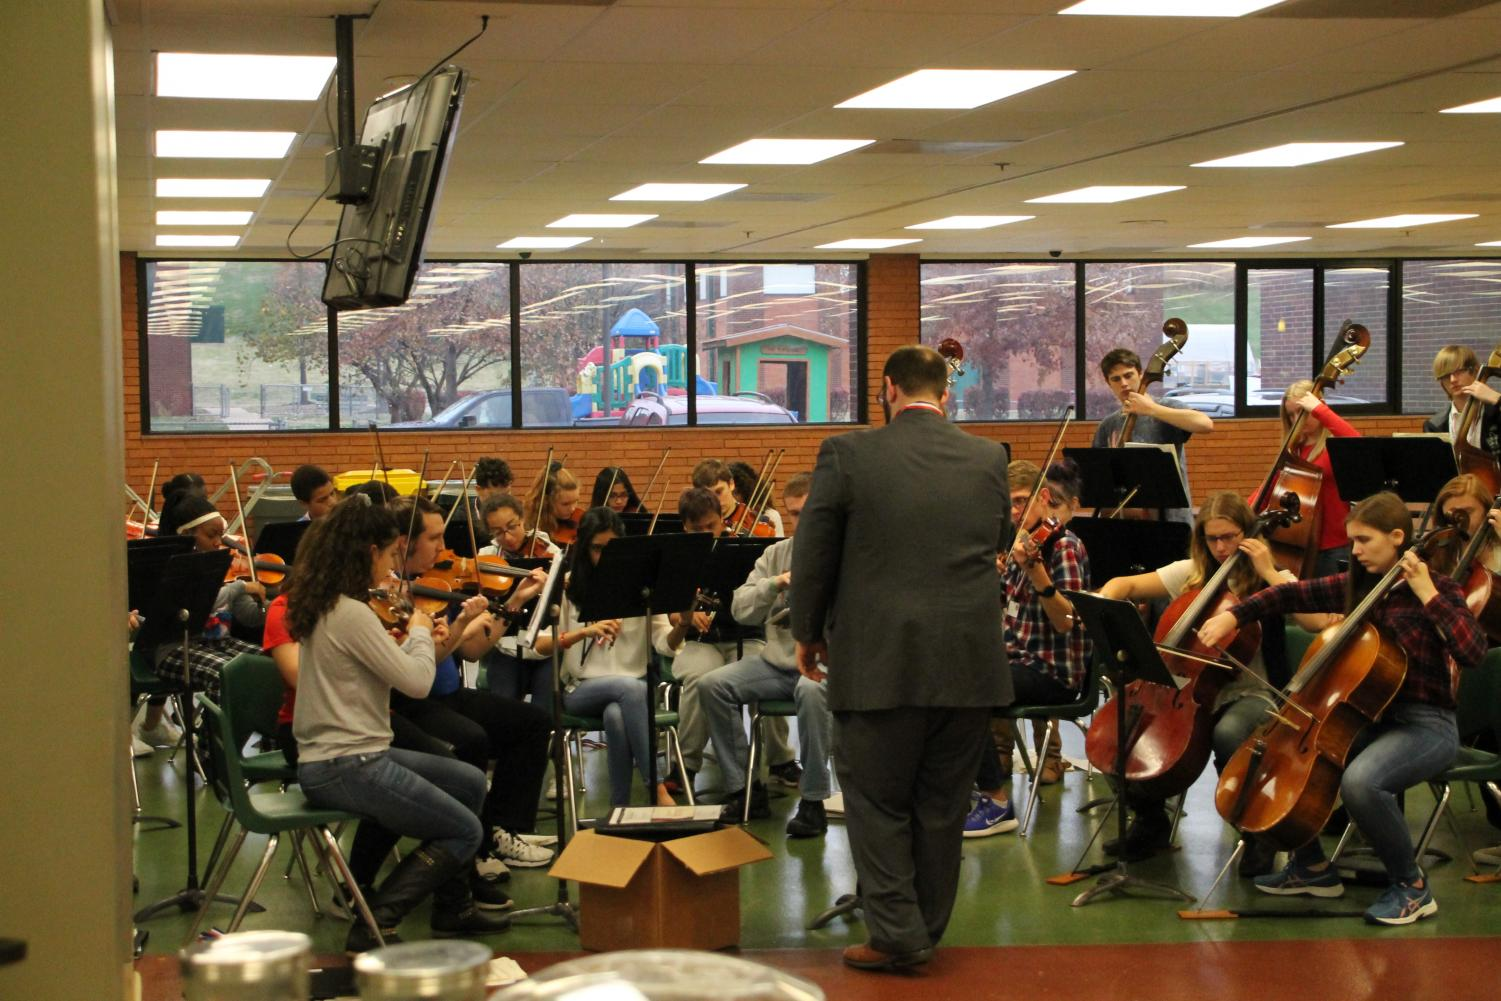 The orchestra performs during the Veterans Day Breakfast held at the school on Monday, Nov. 12.